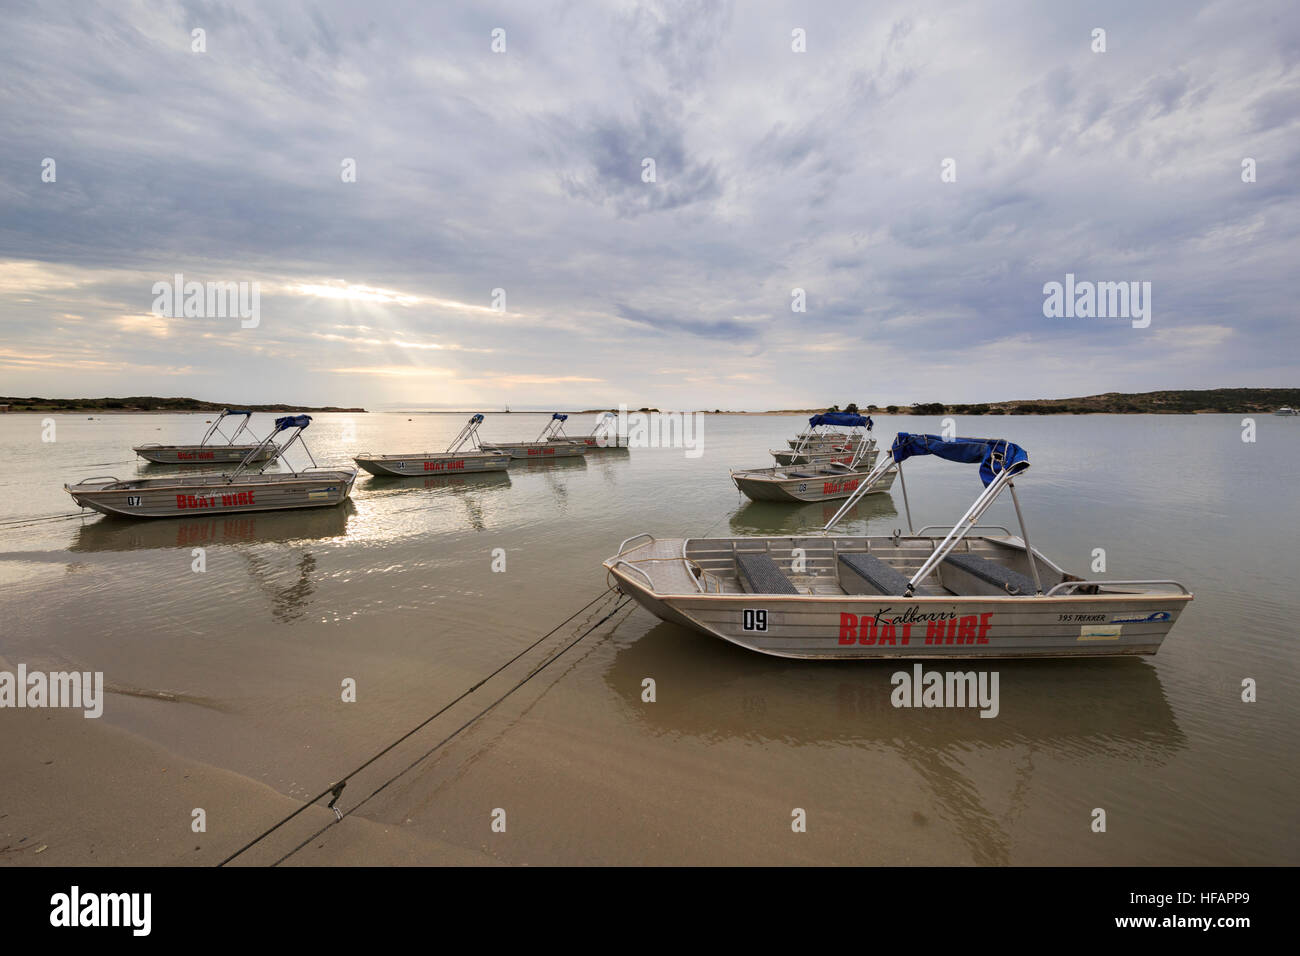 Brooker 395 Trekker boats for hire on the shores of the Murchison River - Stock Image